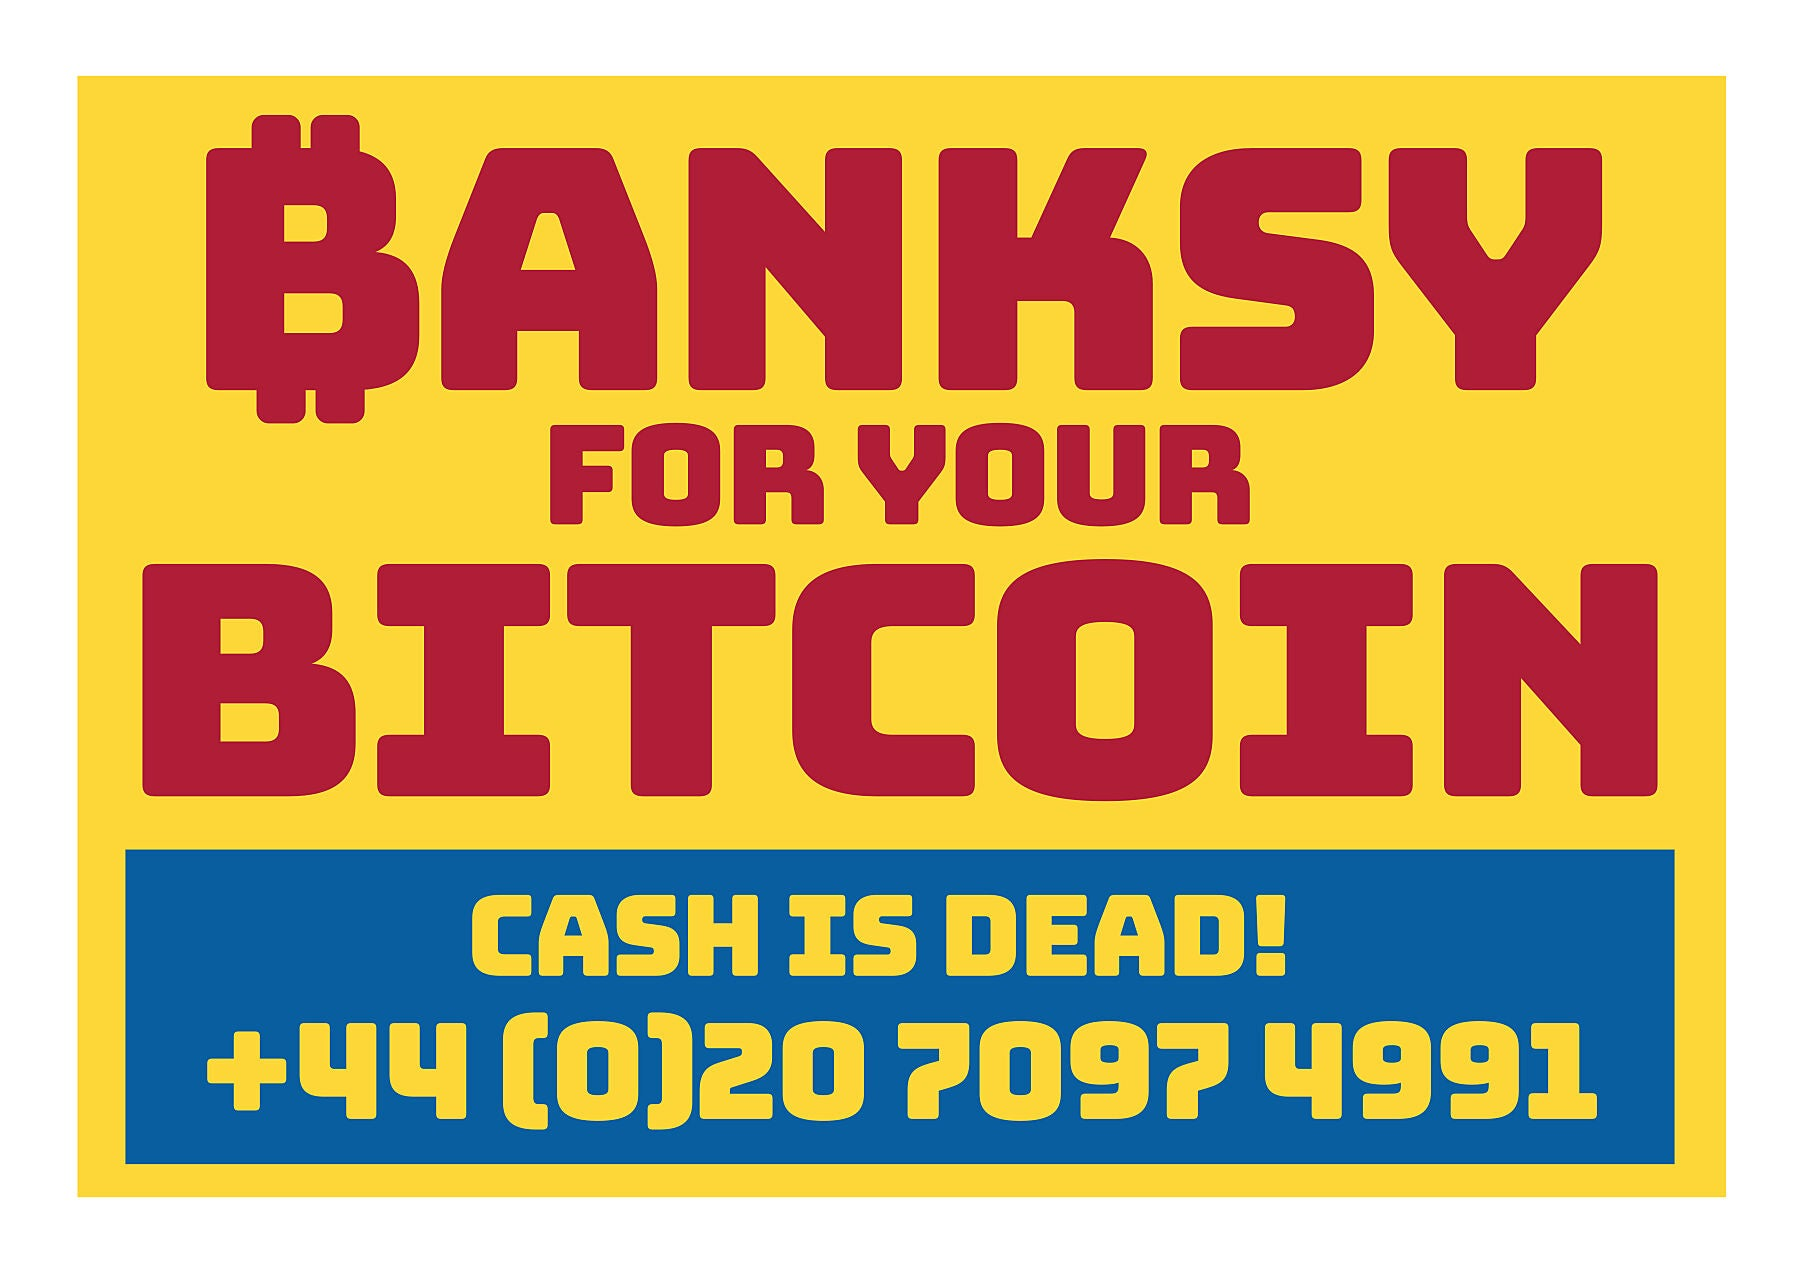 Banksy For Your Bitcoin - Cash Is Dead!